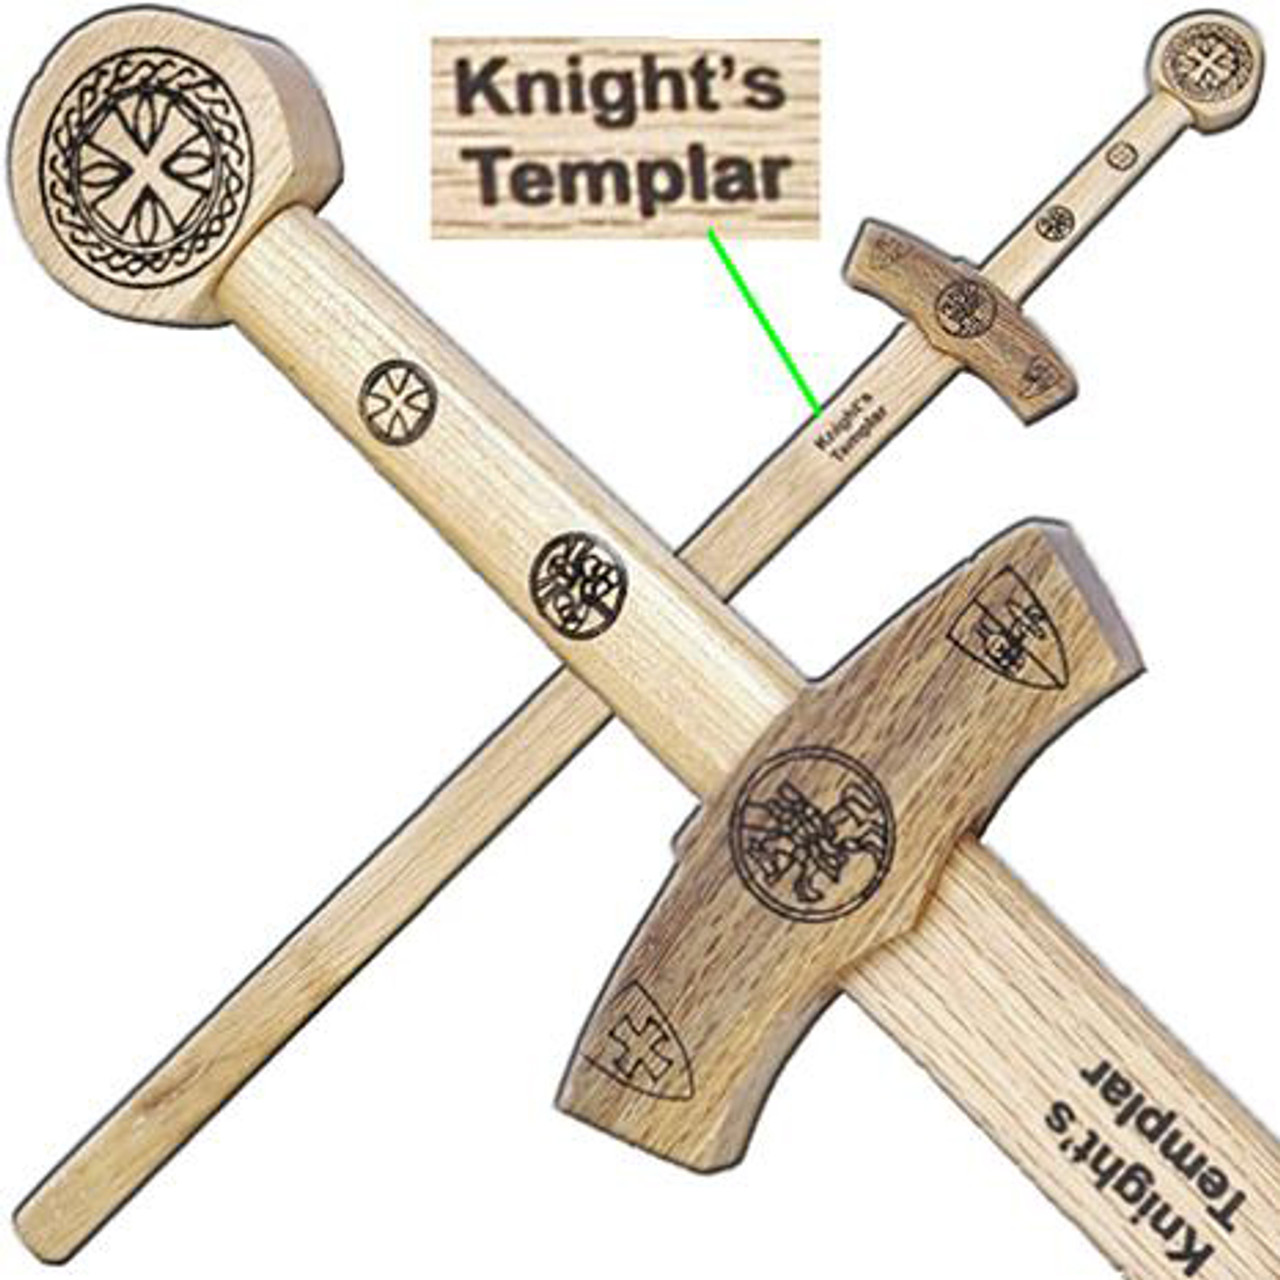 Knights Templar Wooden Medieval Sword 40 Inch Overall